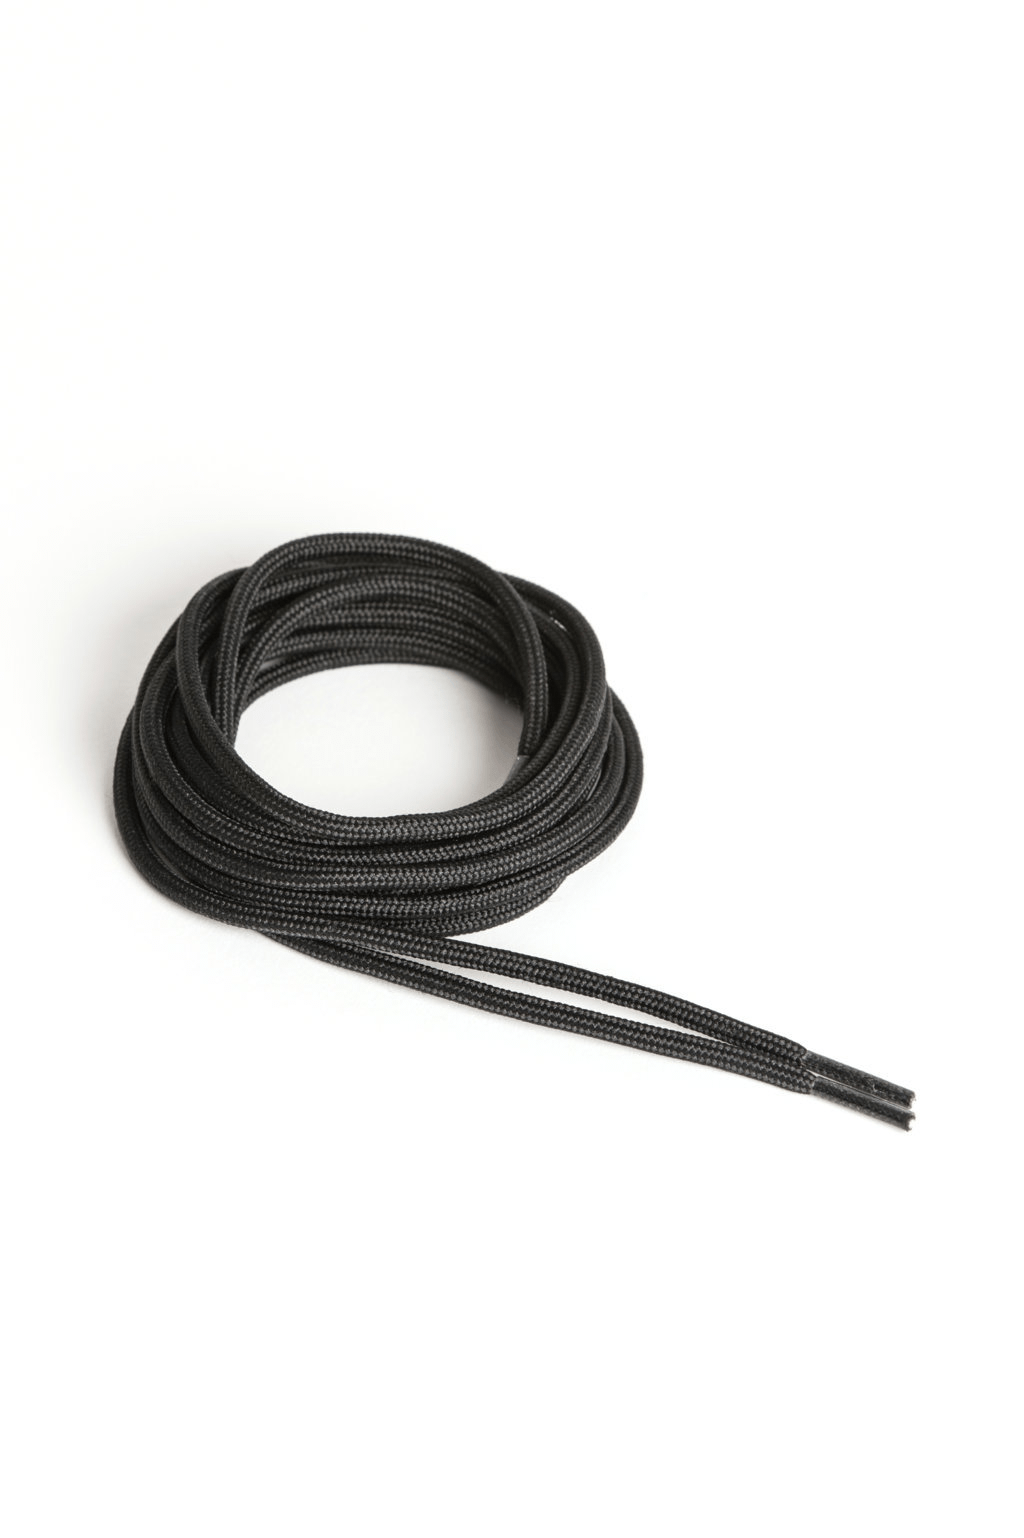 AKU Laces Rocky Round 230 Black